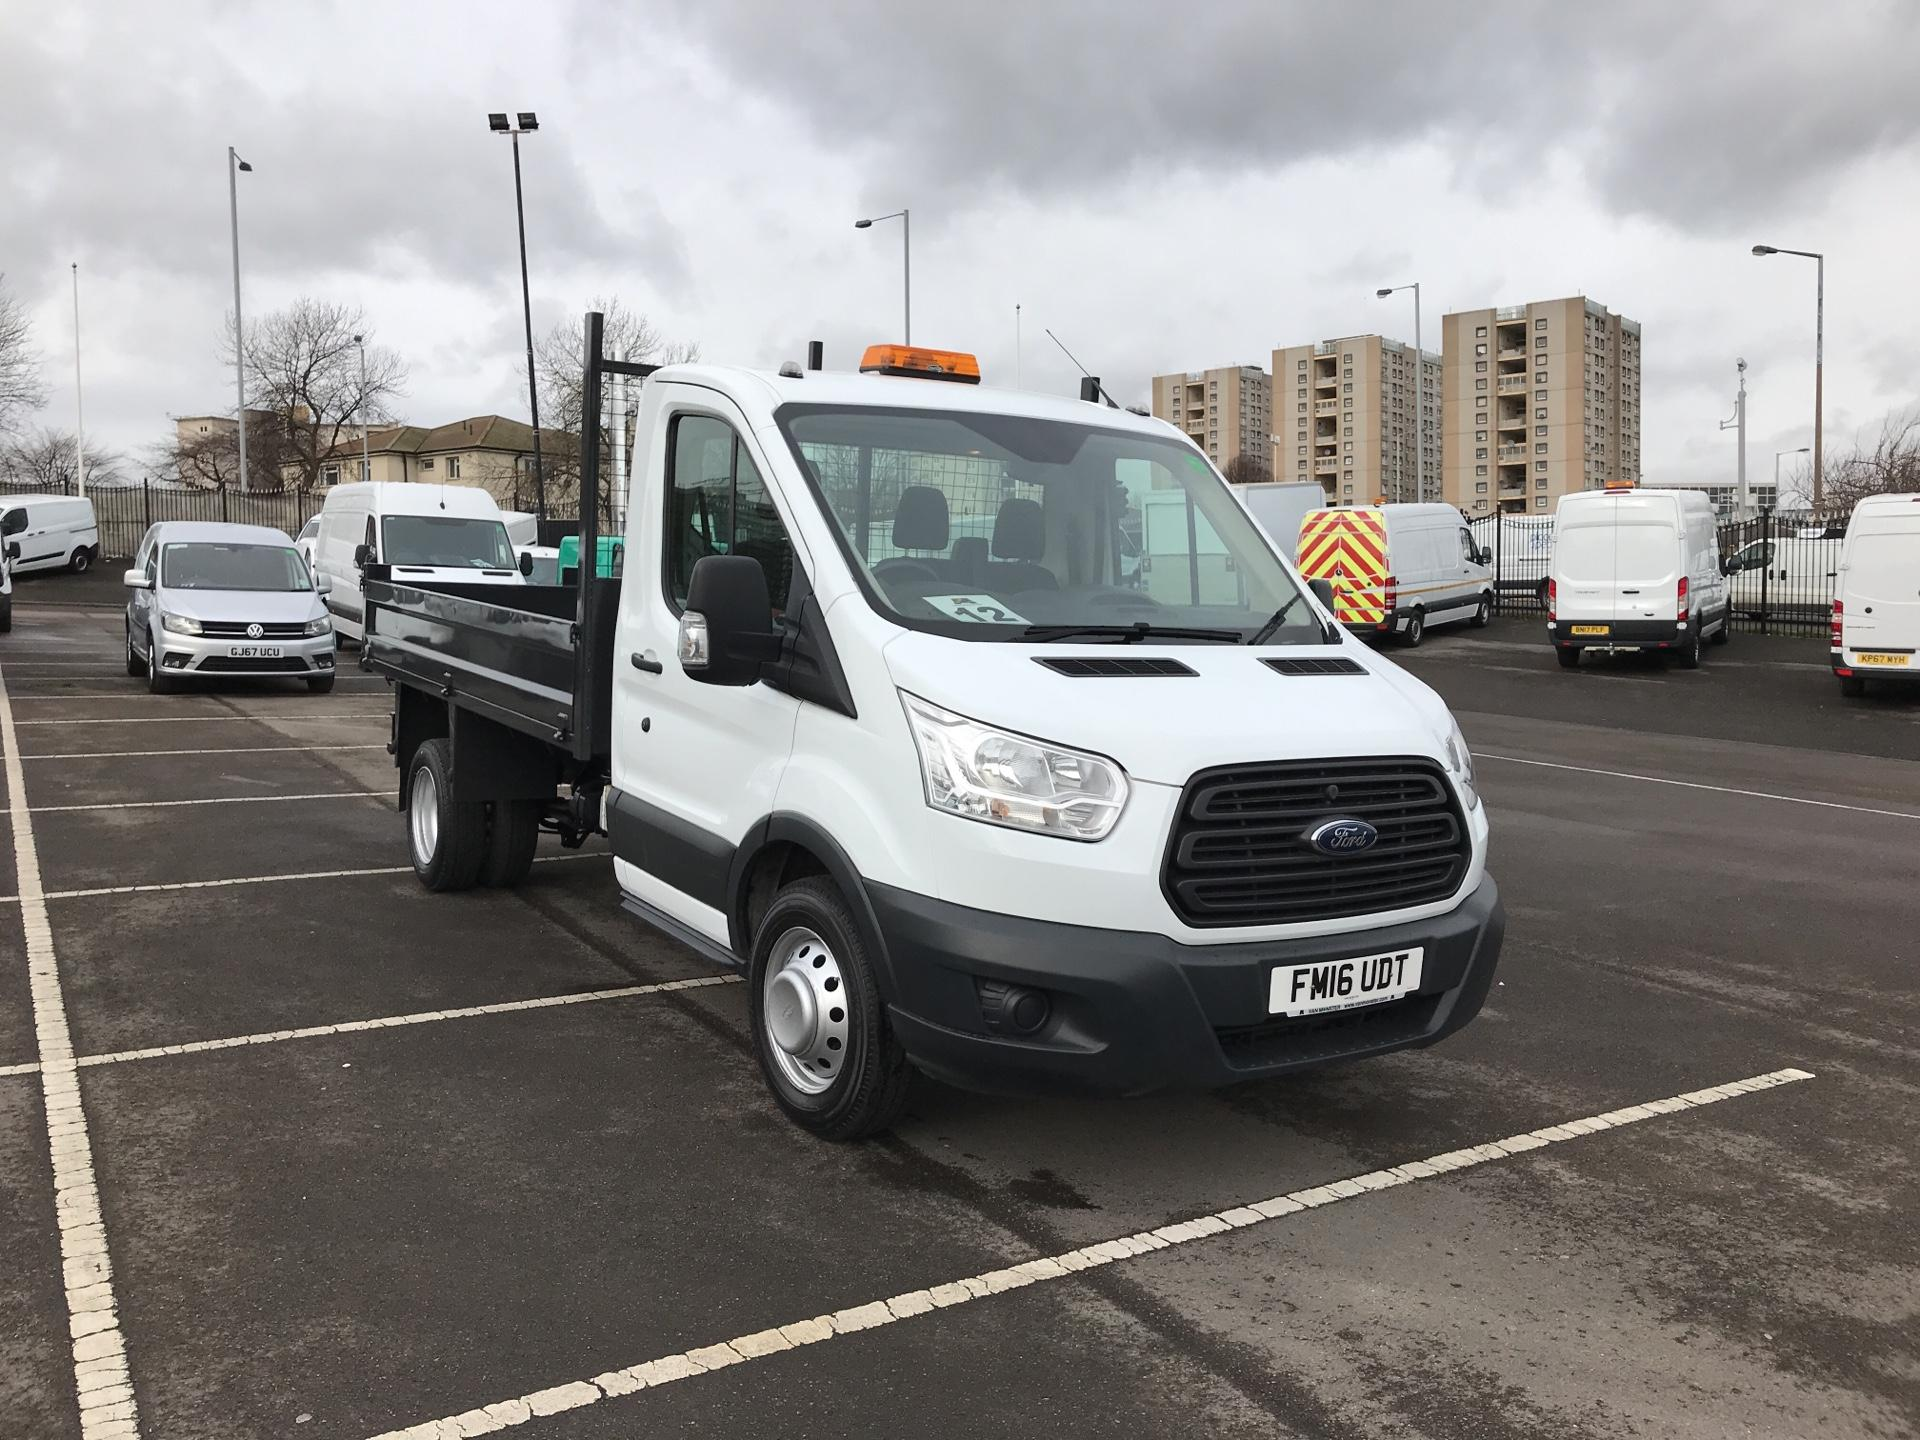 2016 Ford Transit 2.2 Tdci 125Ps SINGLE CAB TIPPER EURO 5 (FM16UDT)